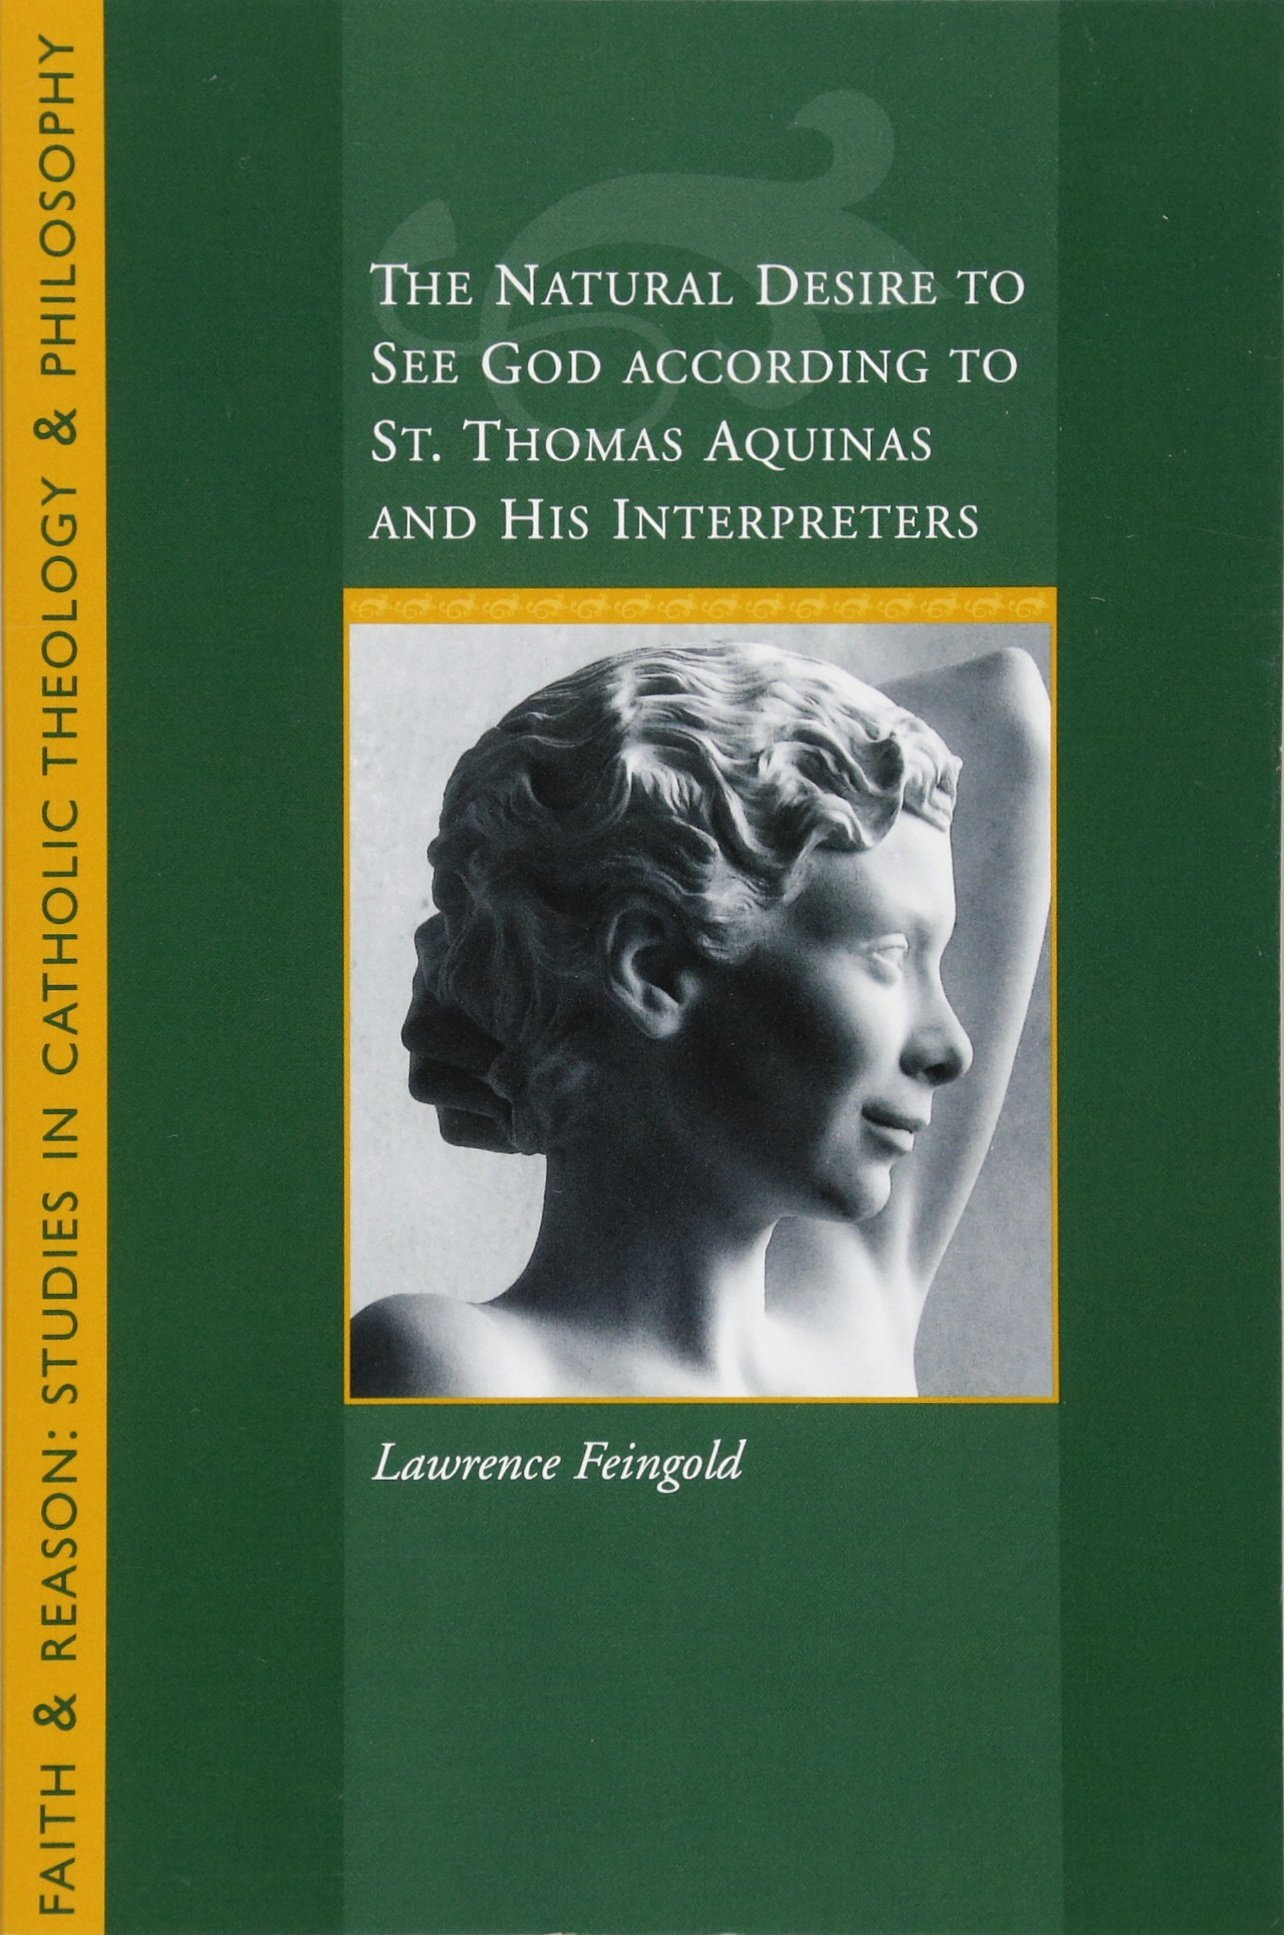 The Natural Desire to See God According to St. Thomas and His Interpreters (Inglese) Copertina flessibile – 30 mag 2013 Lawrence Feingold Sapientia Pr 1932589546 RELIGION / Theology